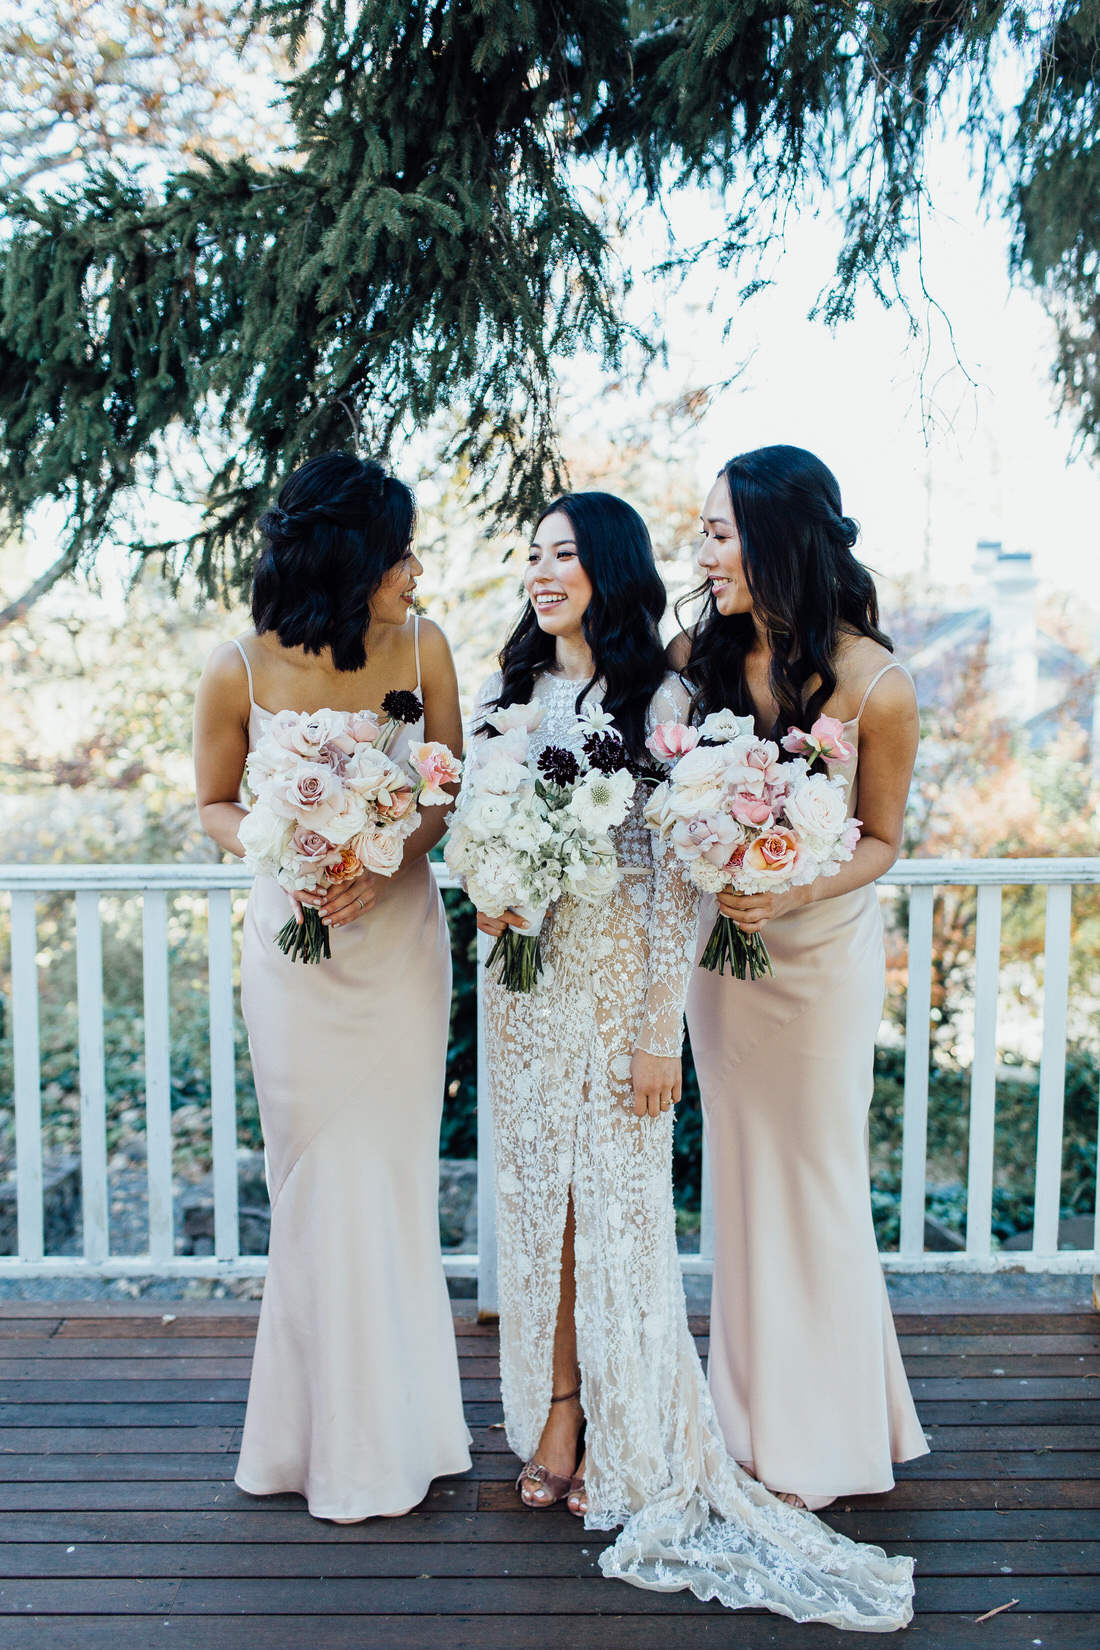 Bridesmaids with bouquets at Centennial vineyards wedding